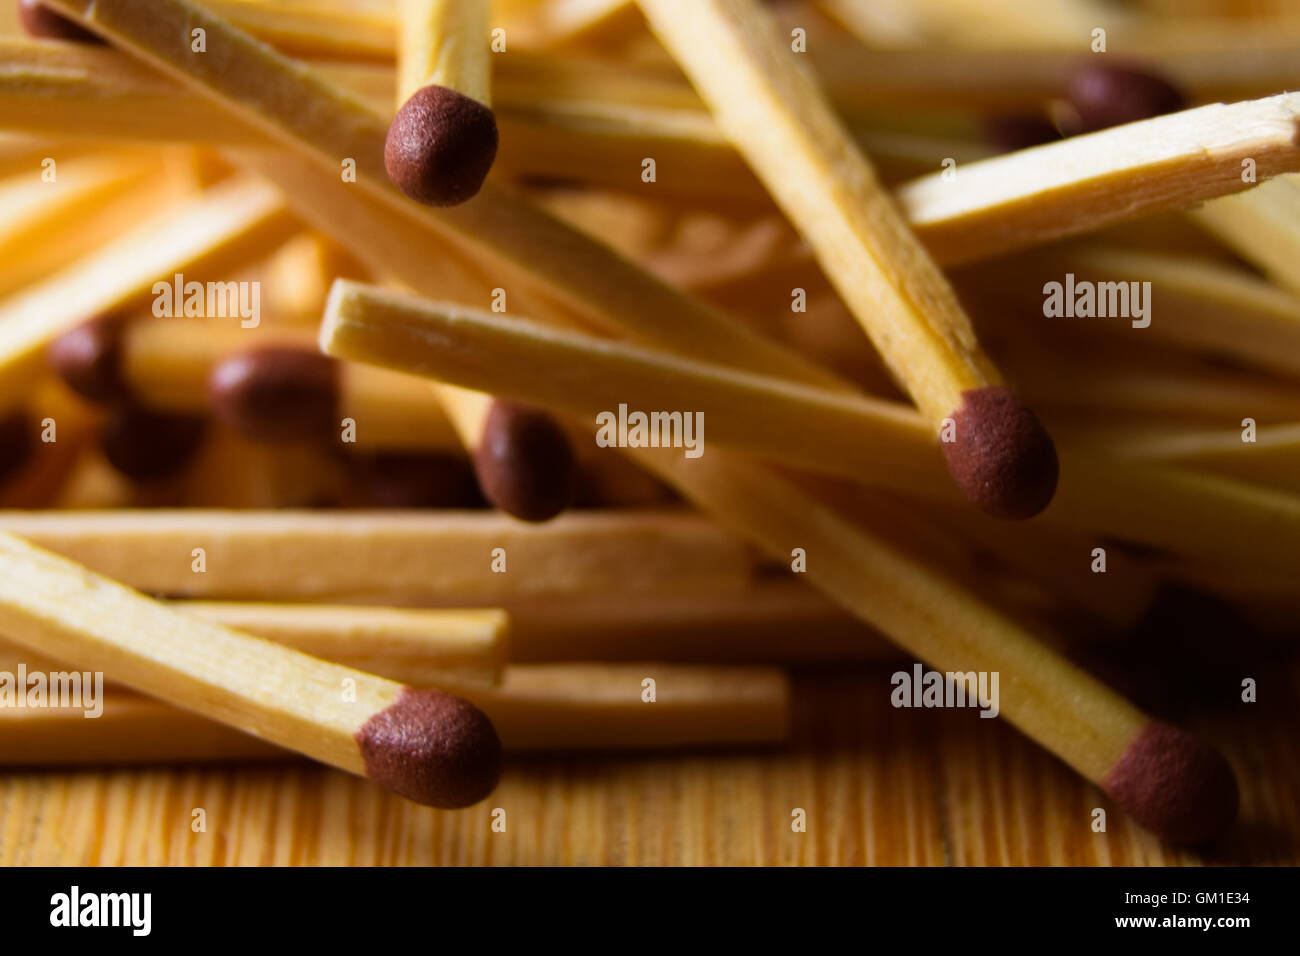 Pile of matches in a random bundle on a wooden table, close up - Stock Image